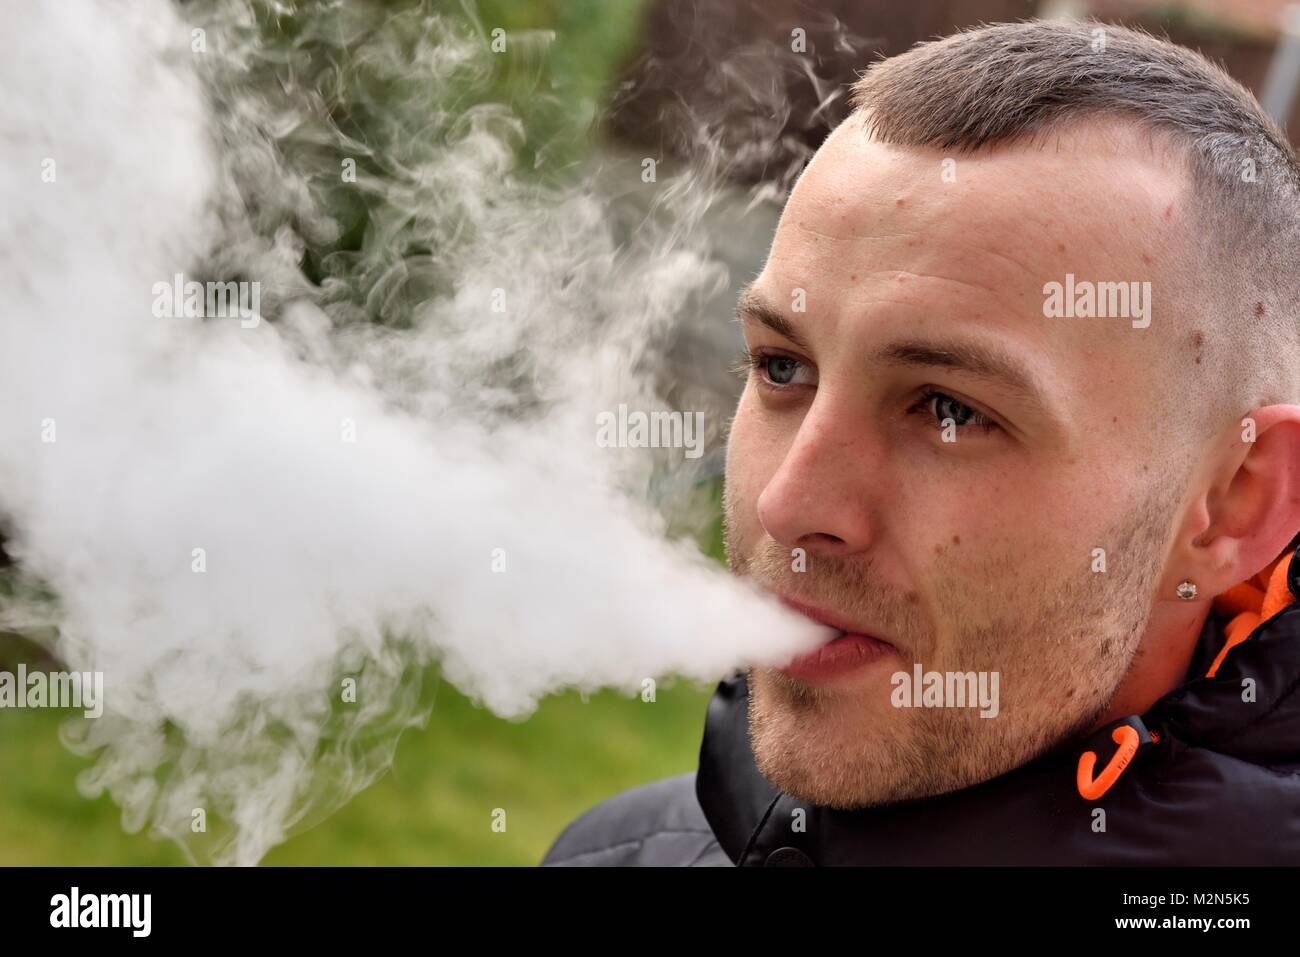 A 27 year old man vaping smoke - Stock Image